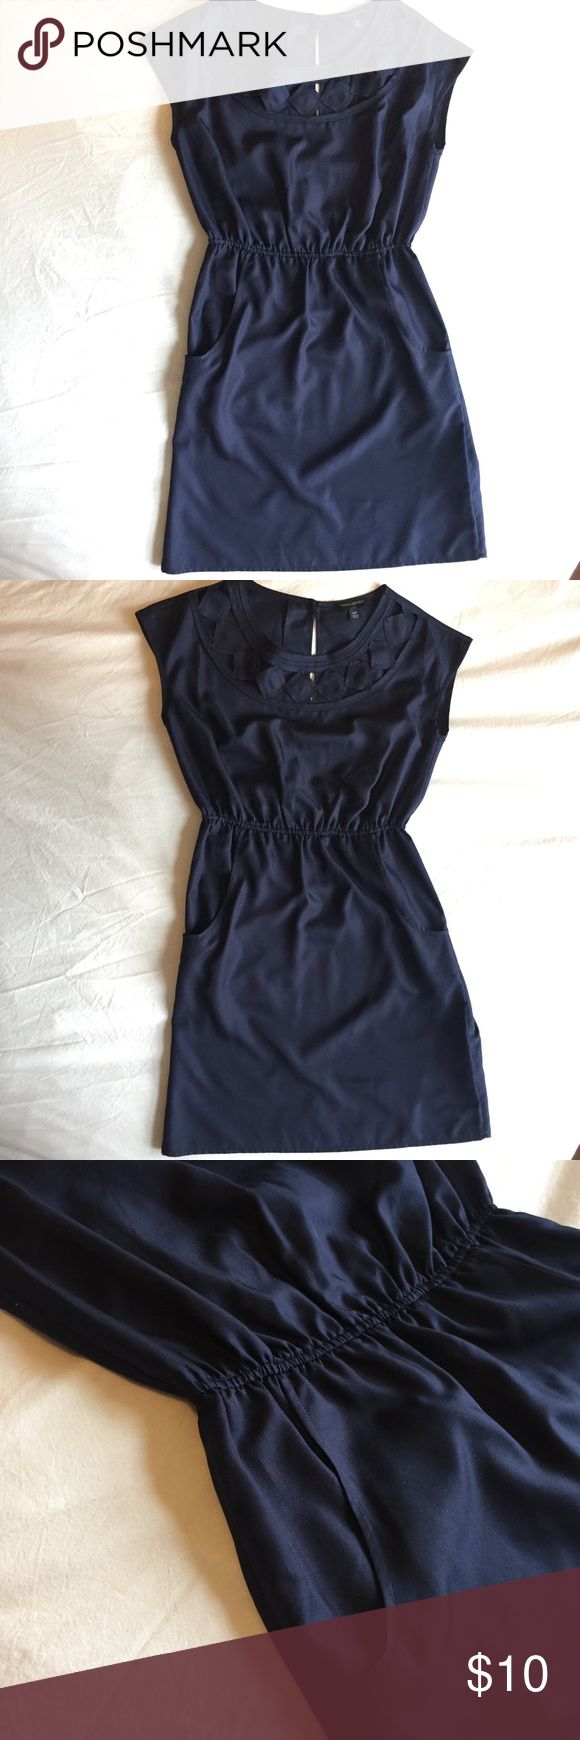 Banana Republic navy dress Banana Republic navy dress, simple but flattering silhouette with some detail around the neckline - and pockets!!  Elasticized waist for some definition and two bronze buttons in the back along neckline, for on/off.  Fabric is silky / smooth feeling.  Simple and versatile - for a dressy workday or casual night out. Banana Republic Dresses